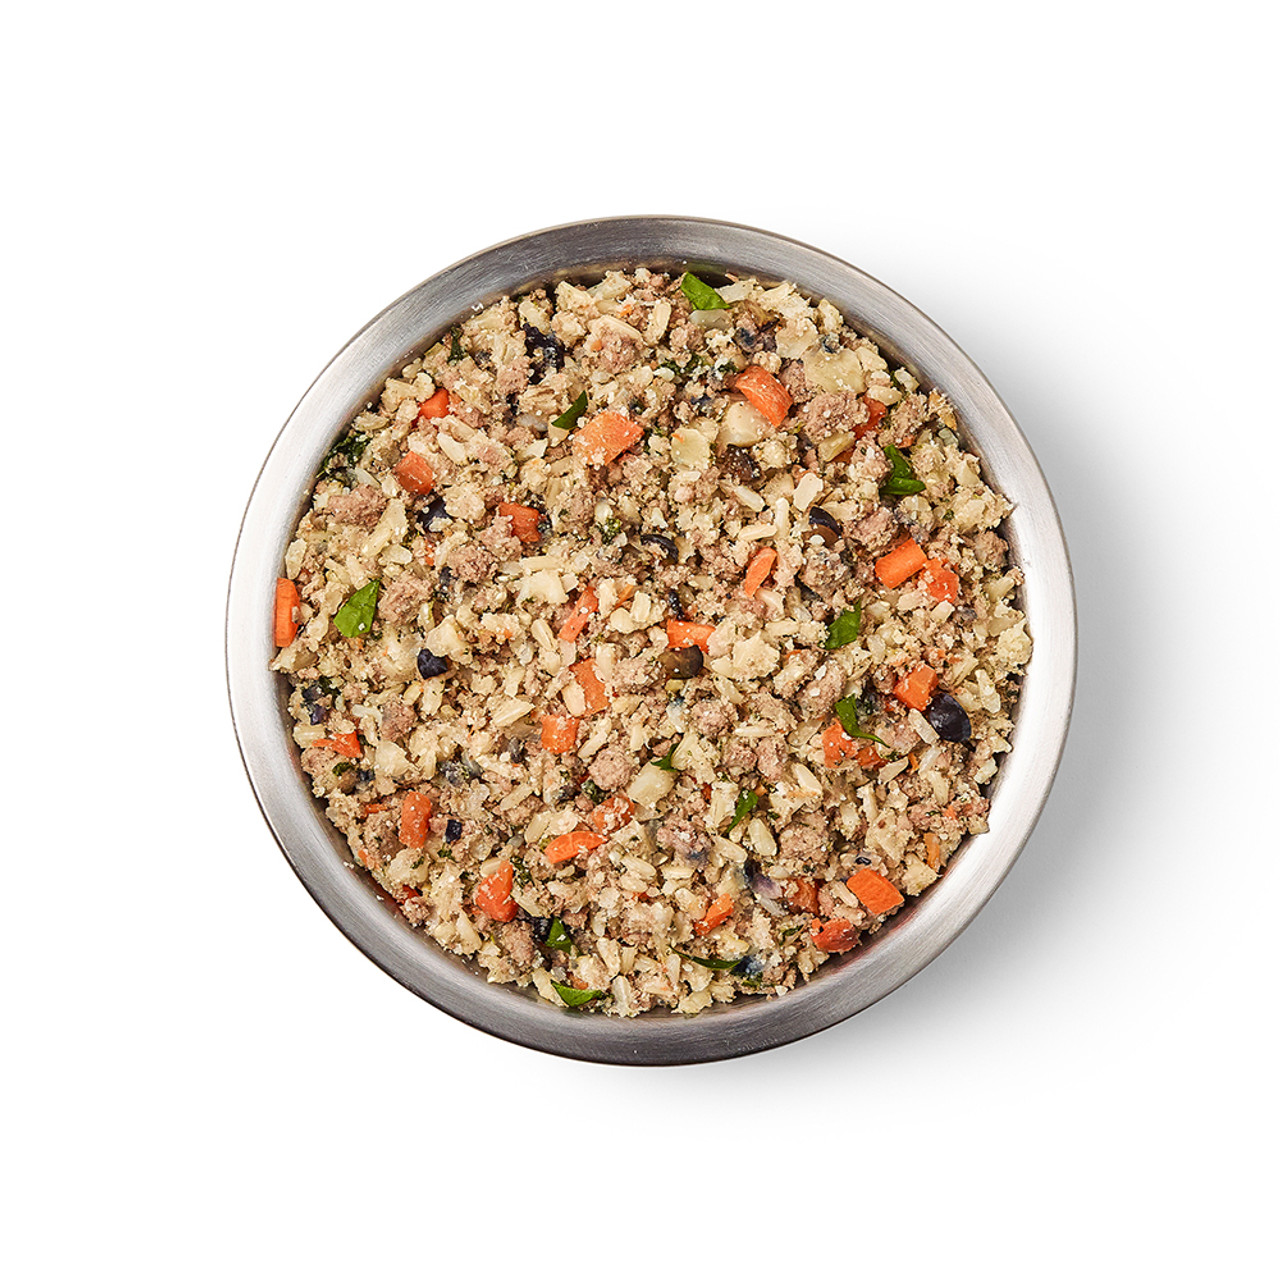 JustFoodForDogs Lamb & Brown Rice Frozen Cooked Dog Food